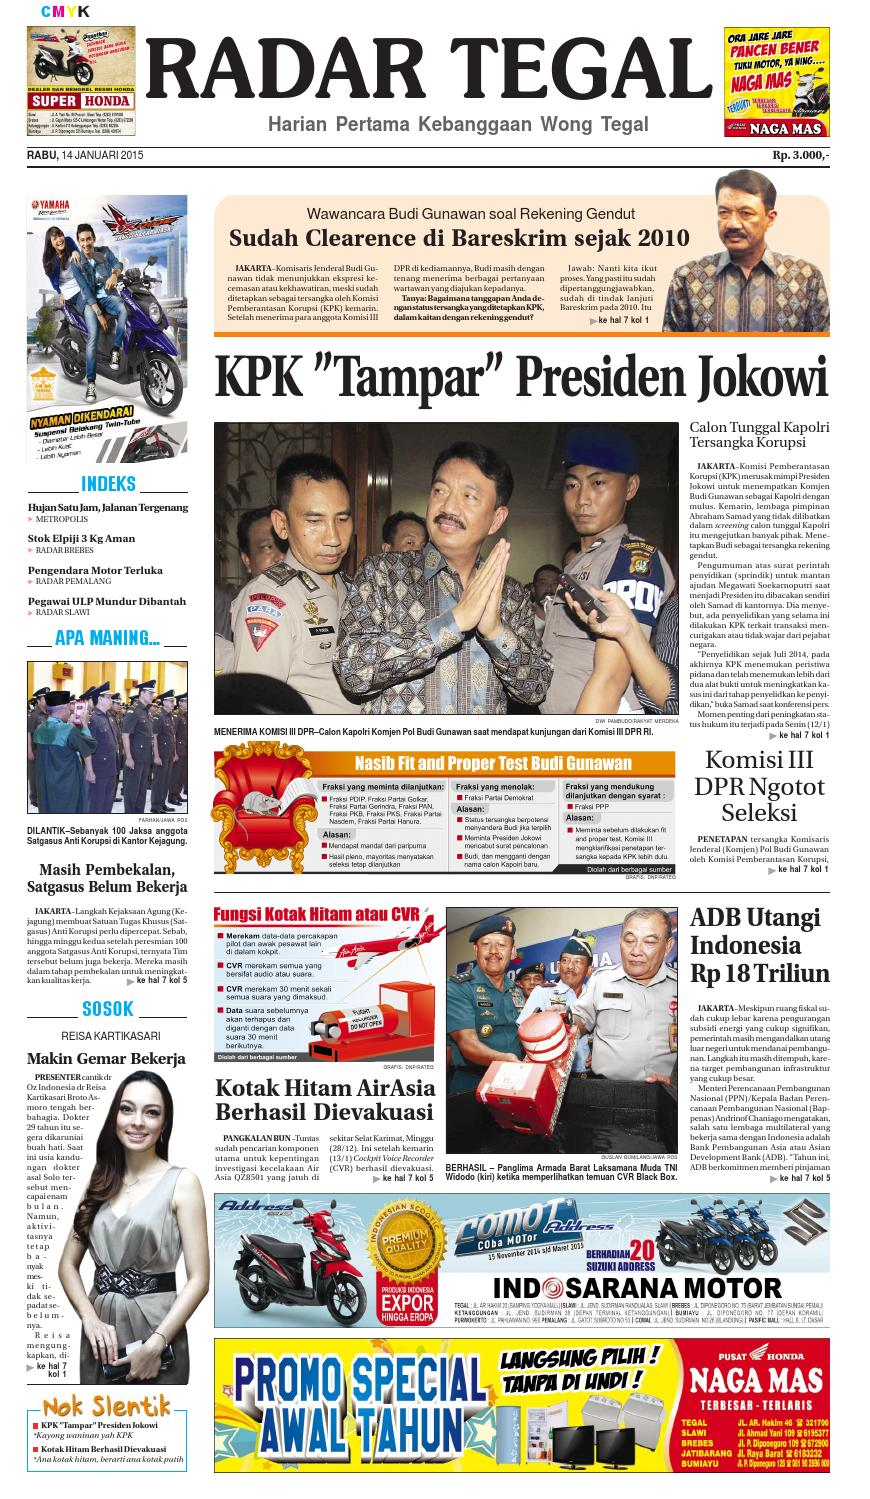 Radar Tegal 14 Jan 2015 By Jaelani Hutabarat Issuu